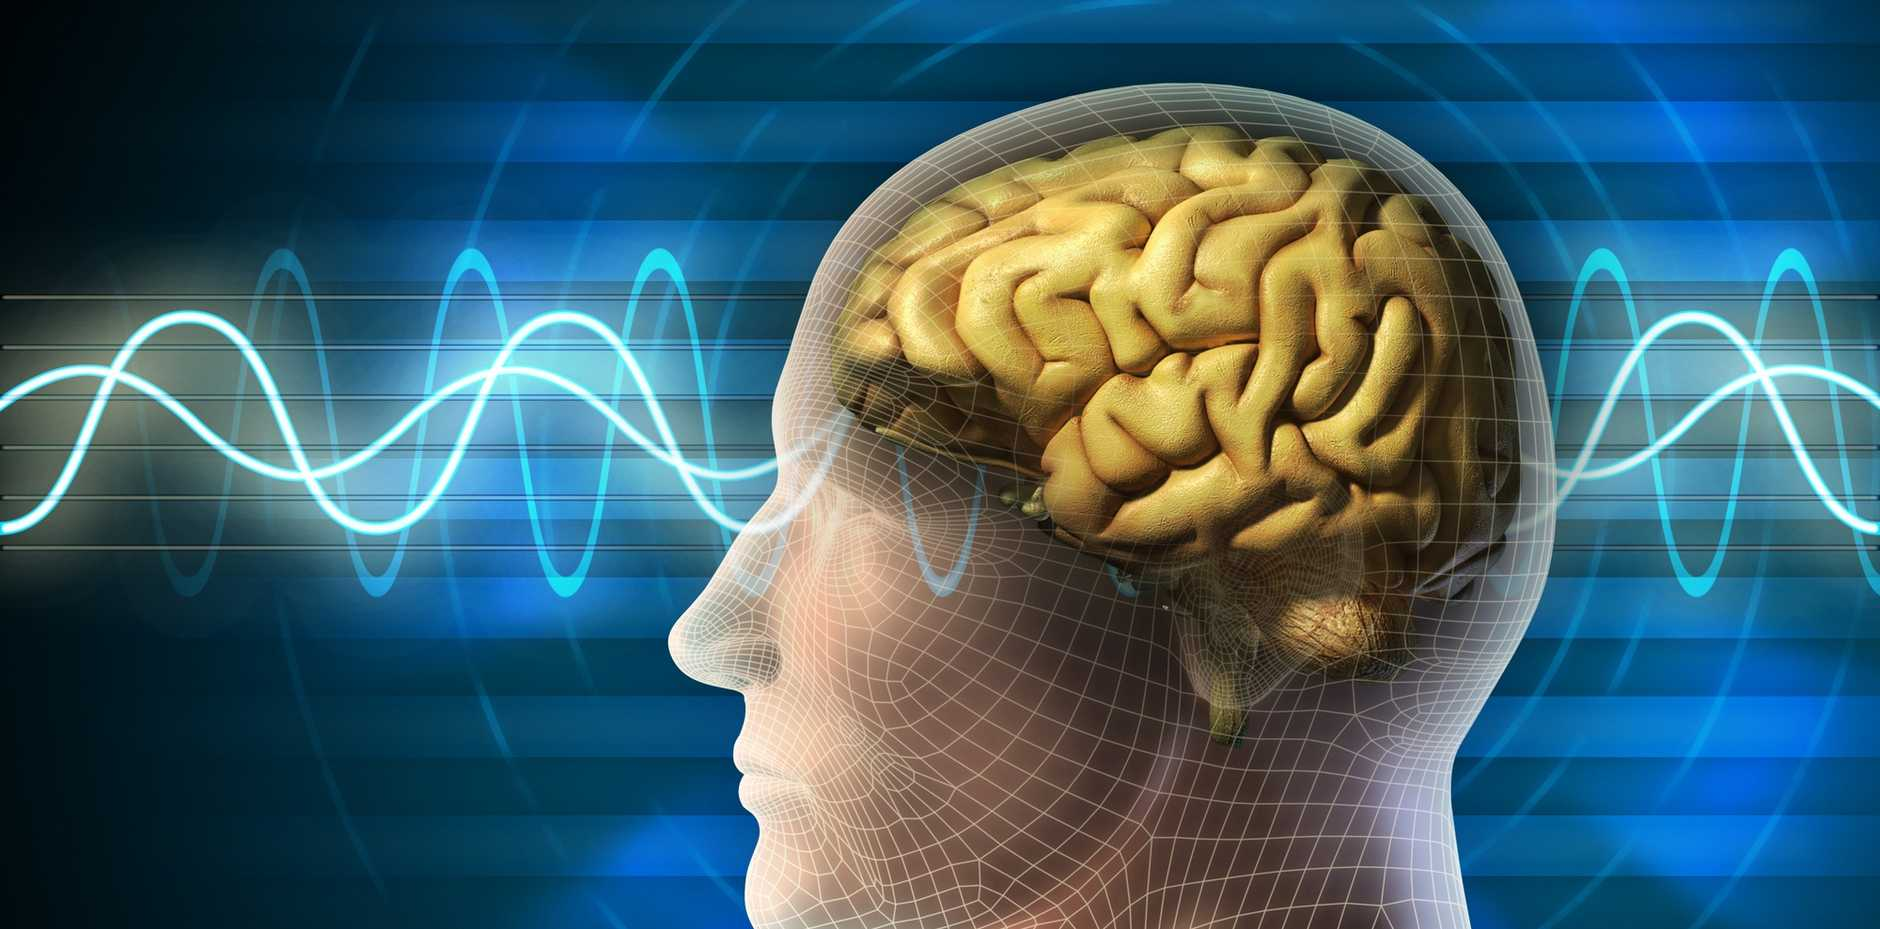 Wiring your brain for SUCCESS